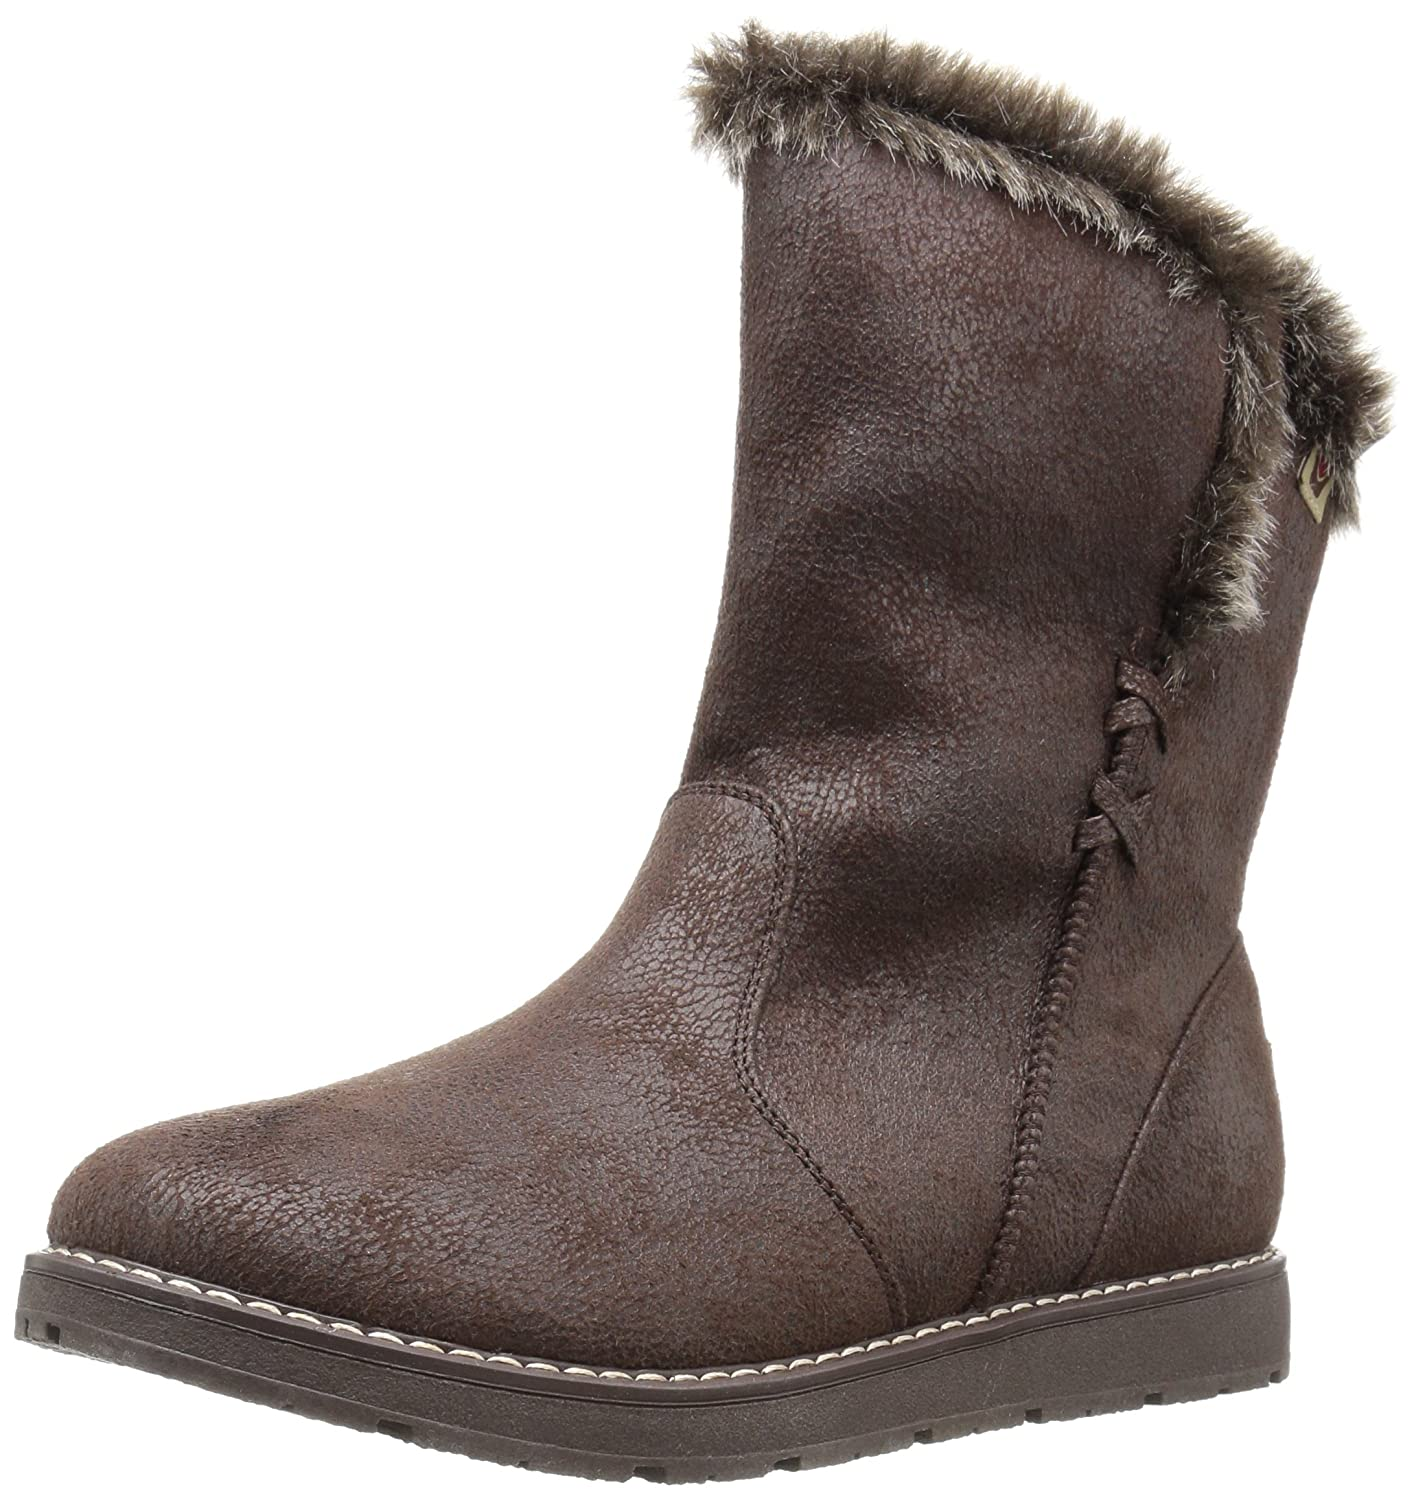 Skechers BOBS from Women's Bobs Alpine Puddle Jump Cozy Winter Boot B01ABY34HK 9 B(M) US|Chocolate